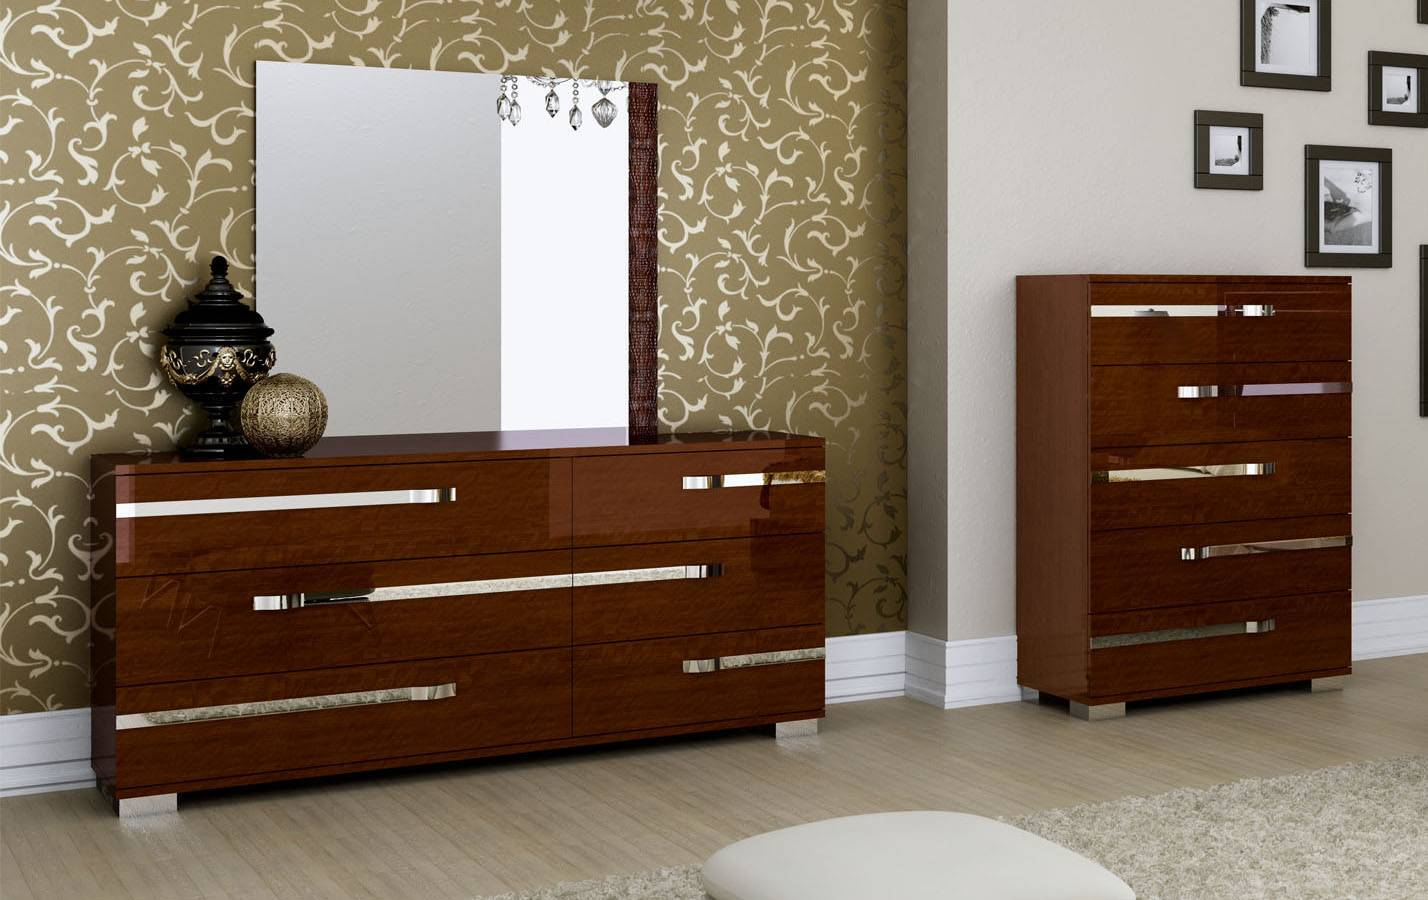 made in italy leather high end modern furniture with extra storage milwaukee wisconsin ah volare. Black Bedroom Furniture Sets. Home Design Ideas